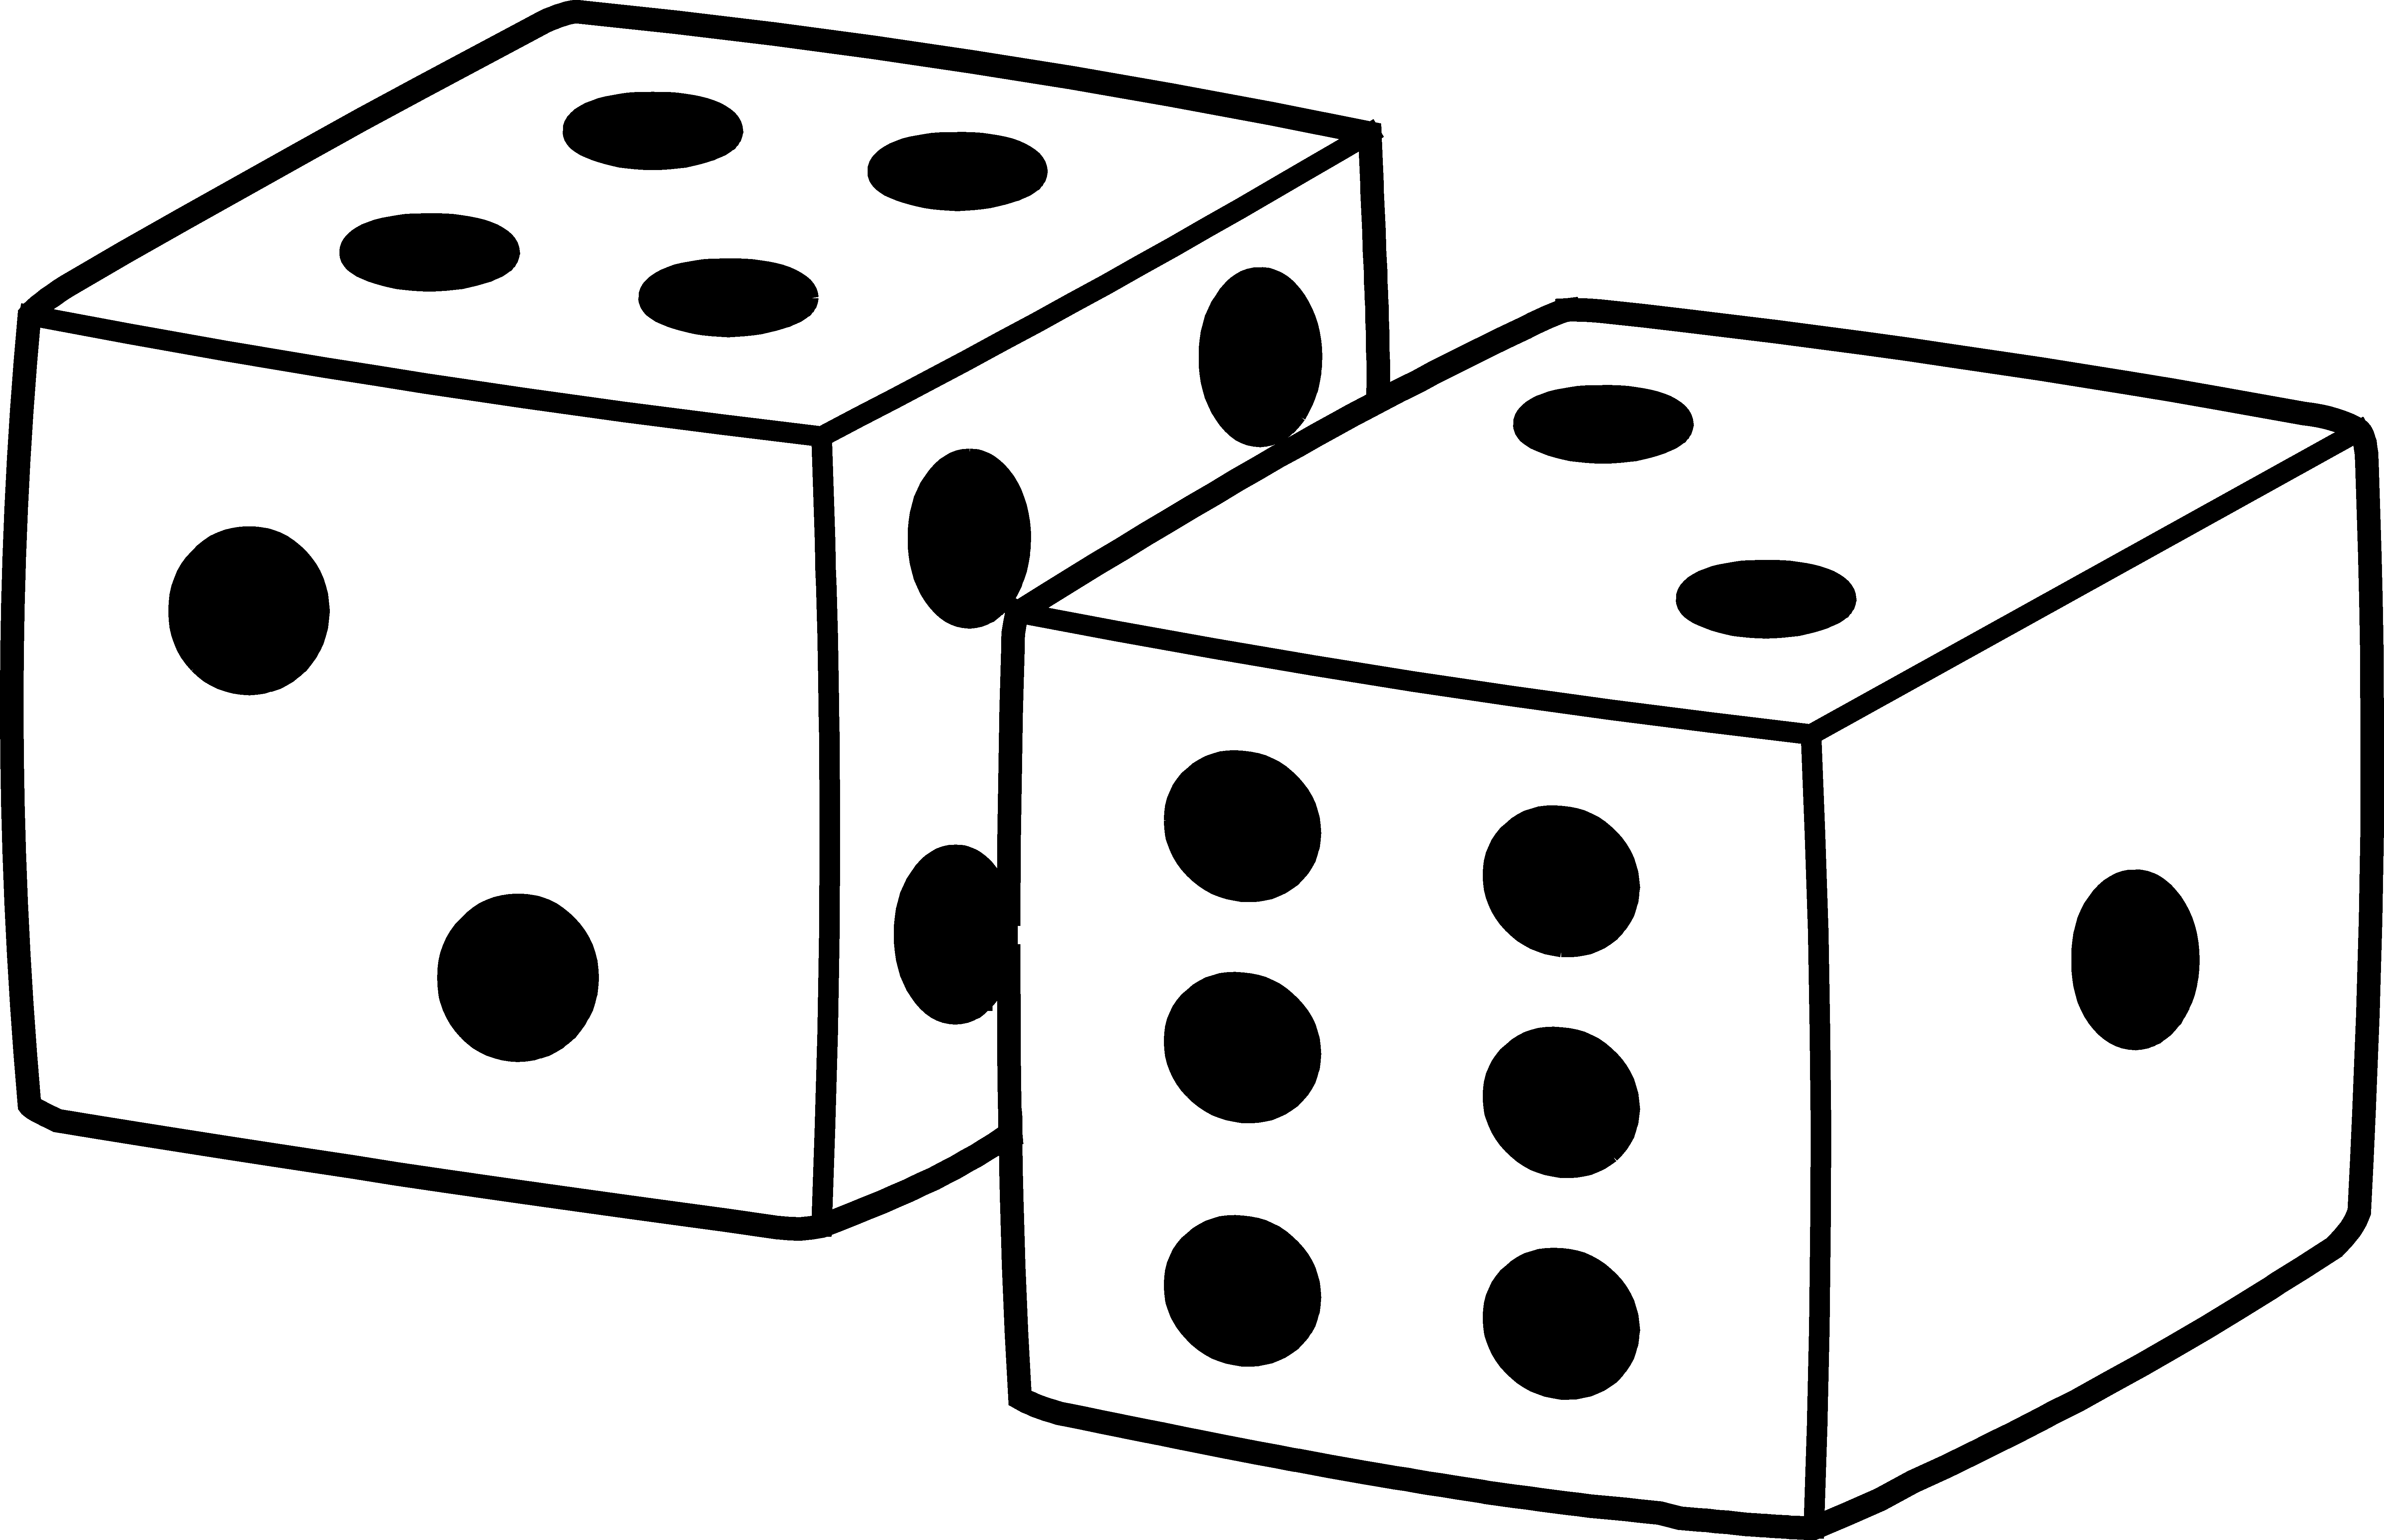 Dice clipart four. Images free group with